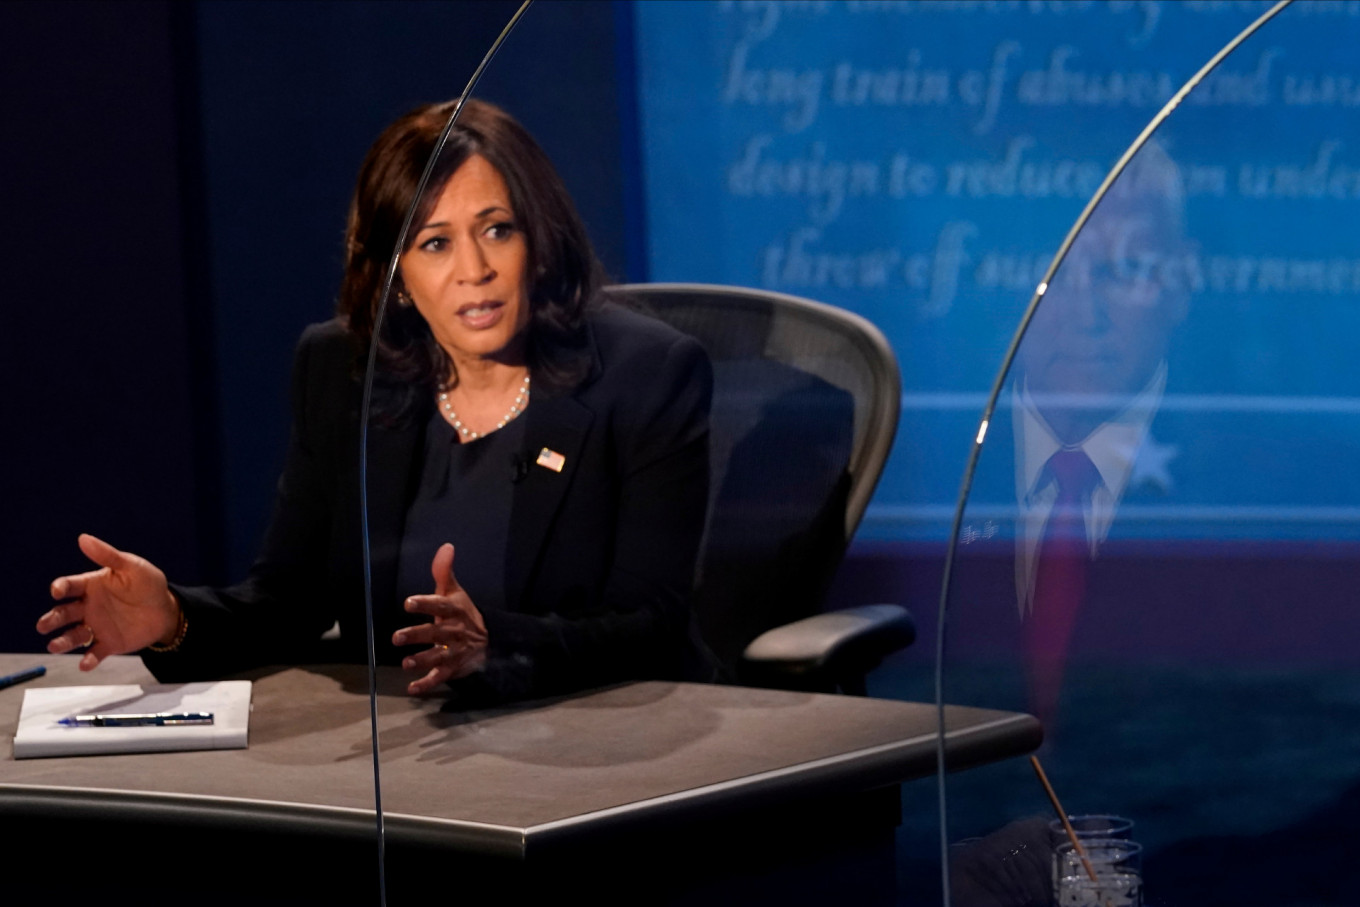 Harris blasts US COVID-19 response as 'greatest failure' in presidential history